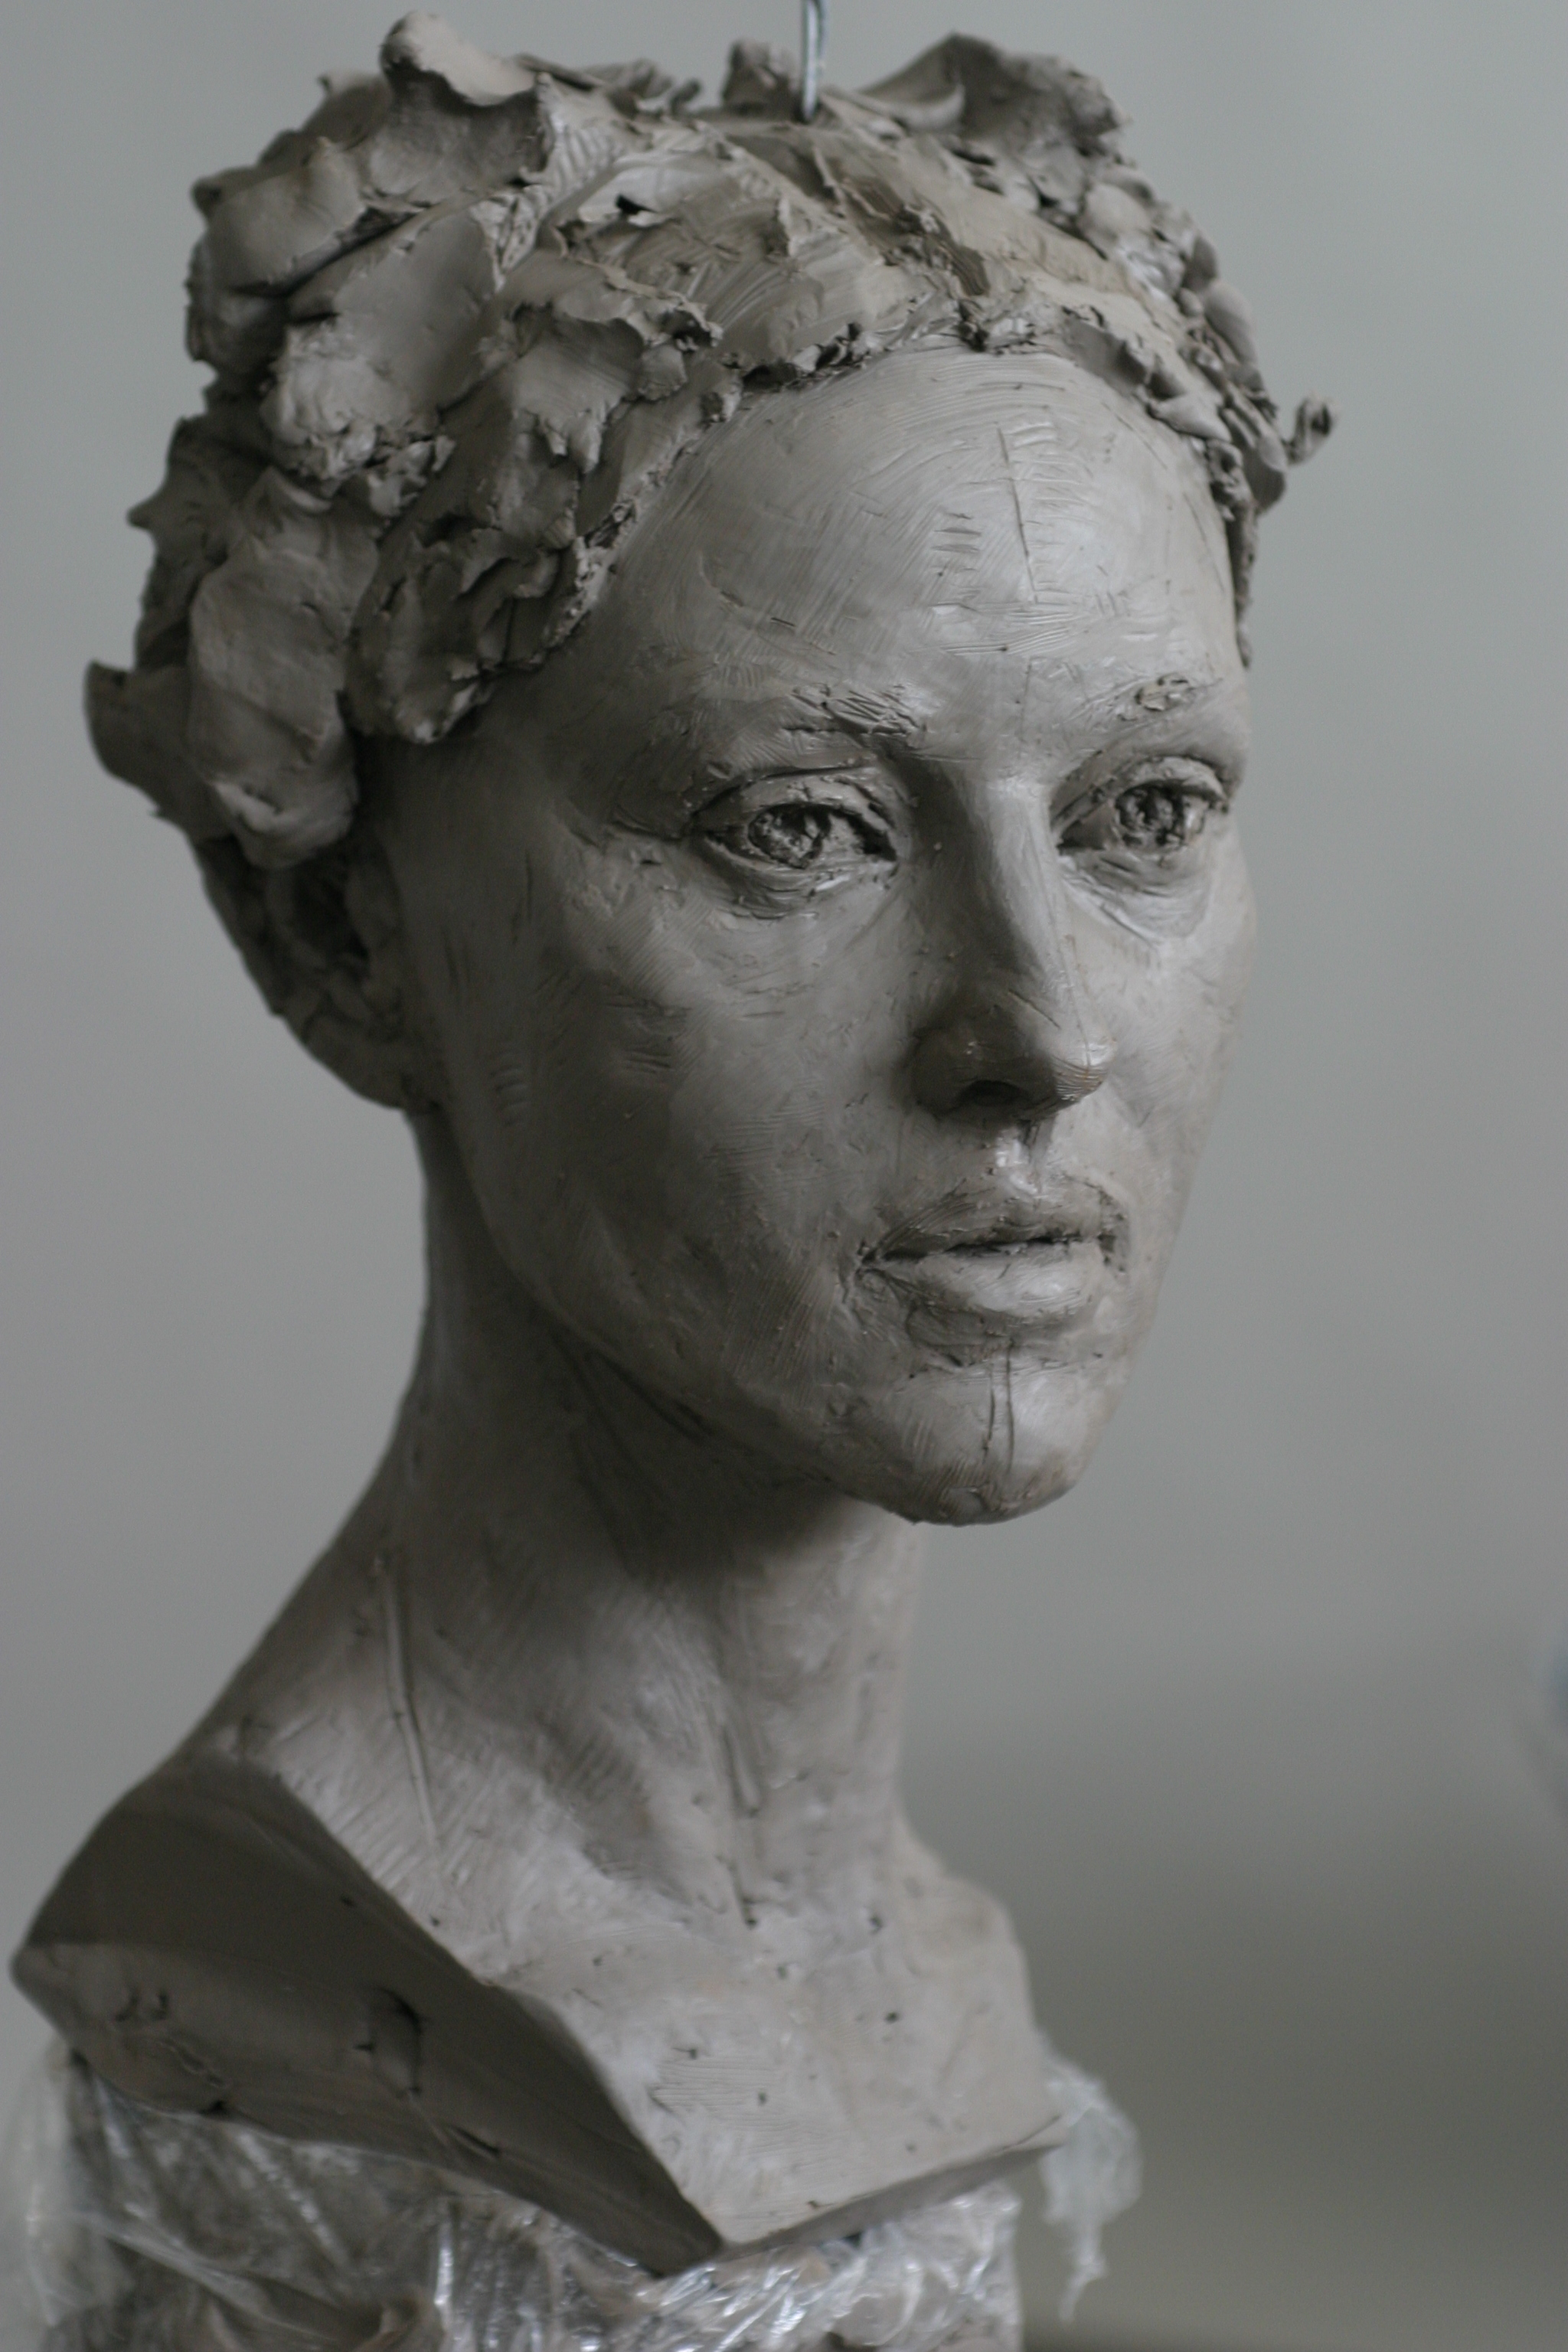 Monica Belluci - Clay sculpture by Eric Saint Chaffray - Credit Musée Grévin